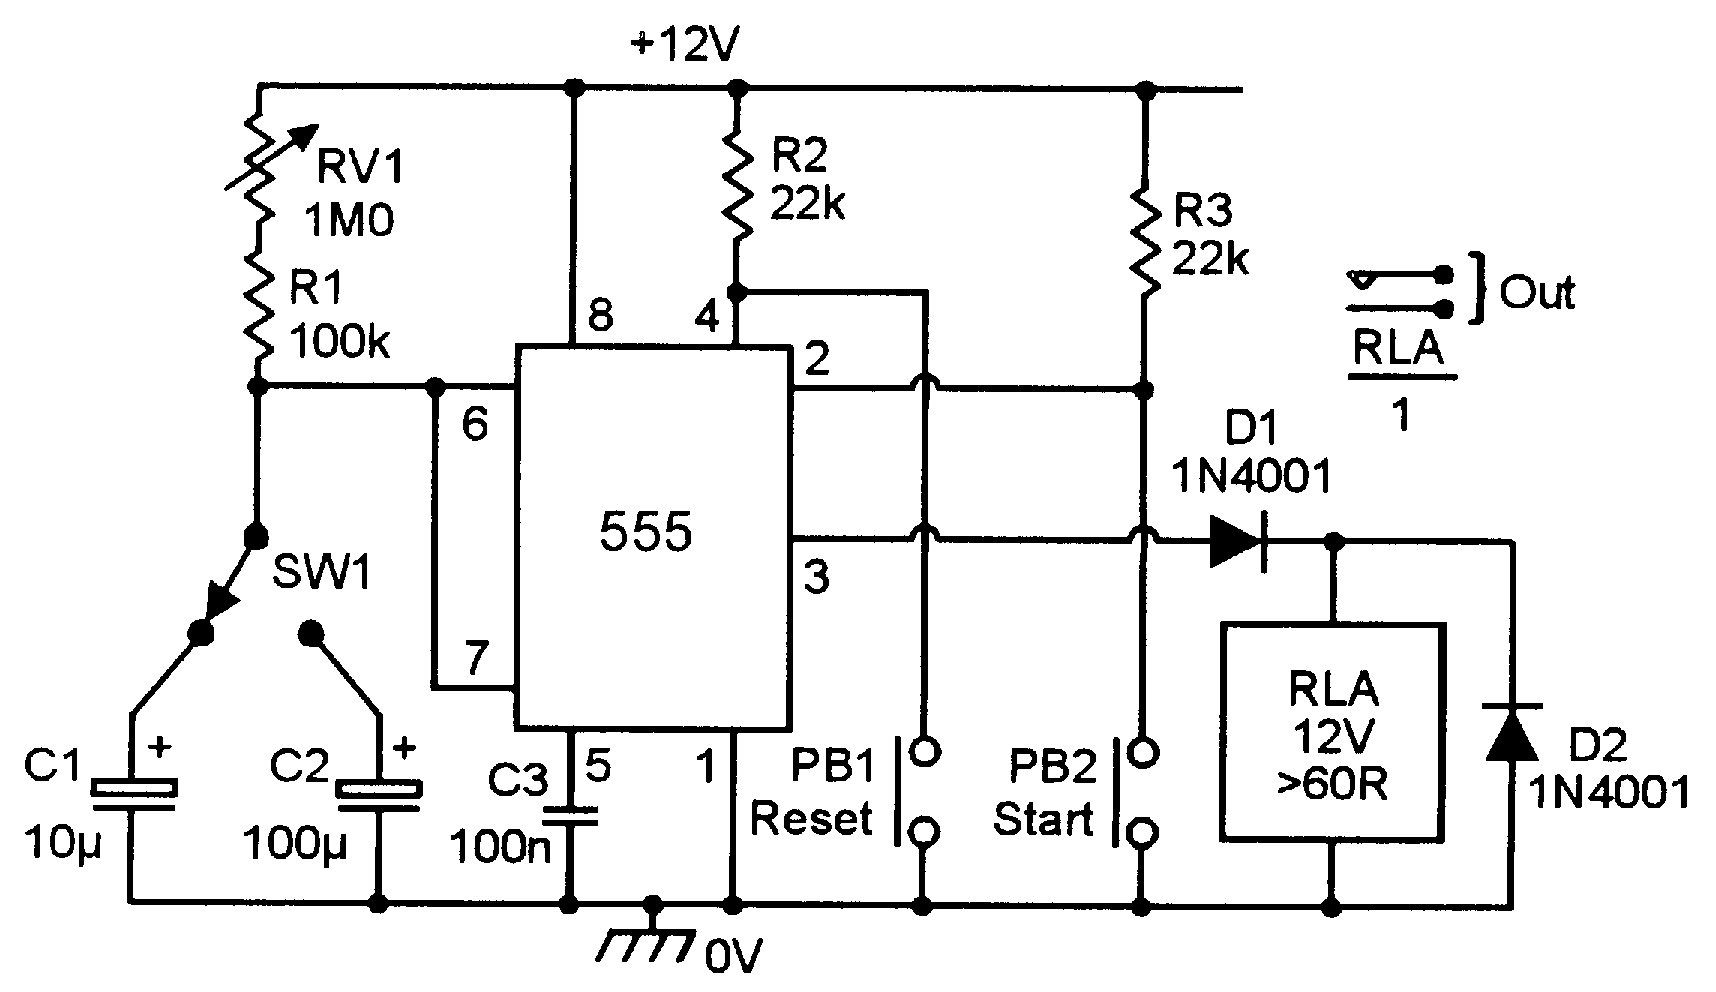 High And Low Frequency Noise Generator Schematic 555 Monostable Circuits Nuts Volts Magazine